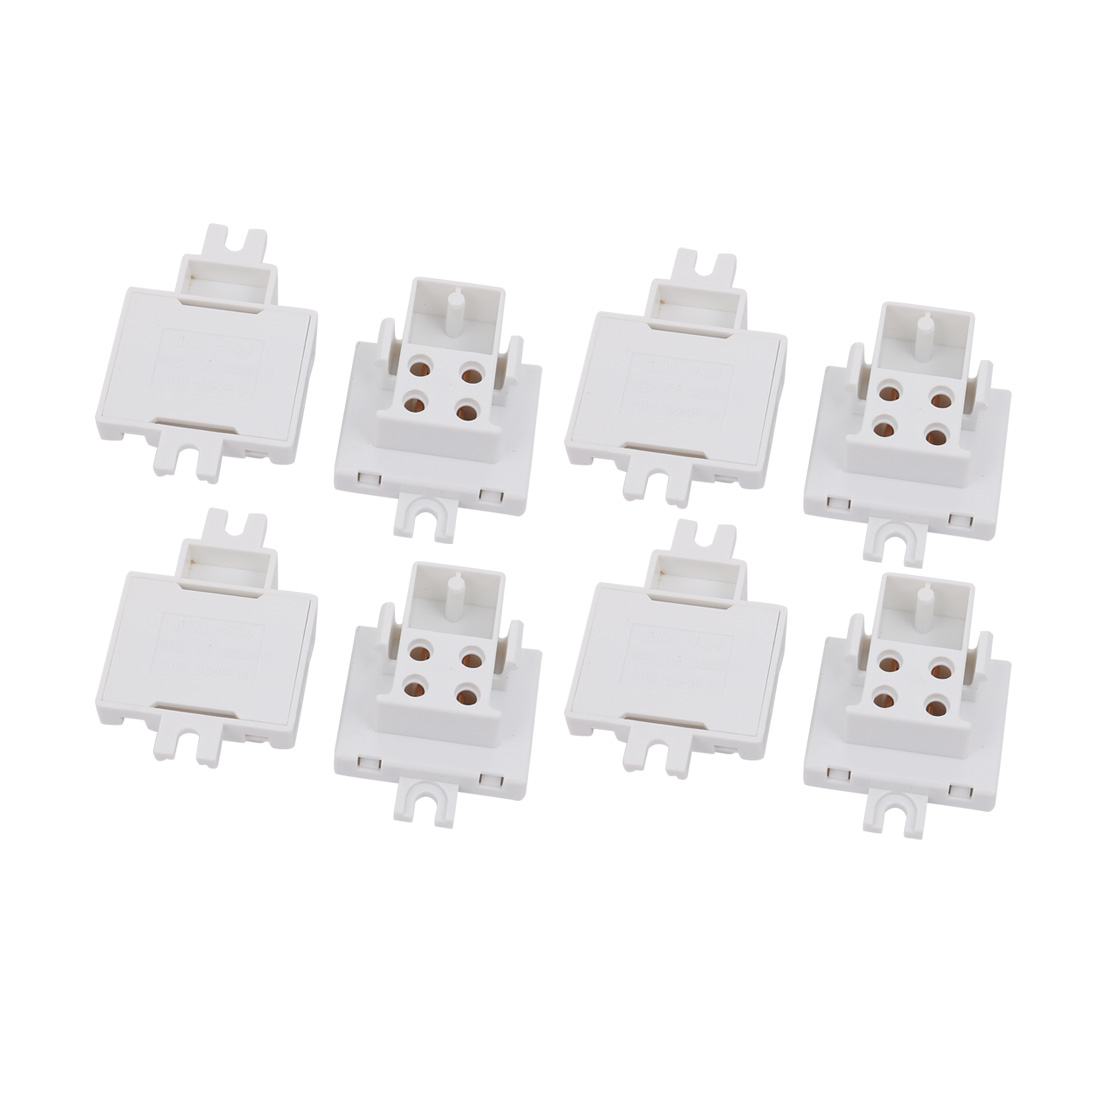 8Pcs G10Q-F34D AC 500V 2A Light Socket Base Fluorescent Tube Lamp Holder